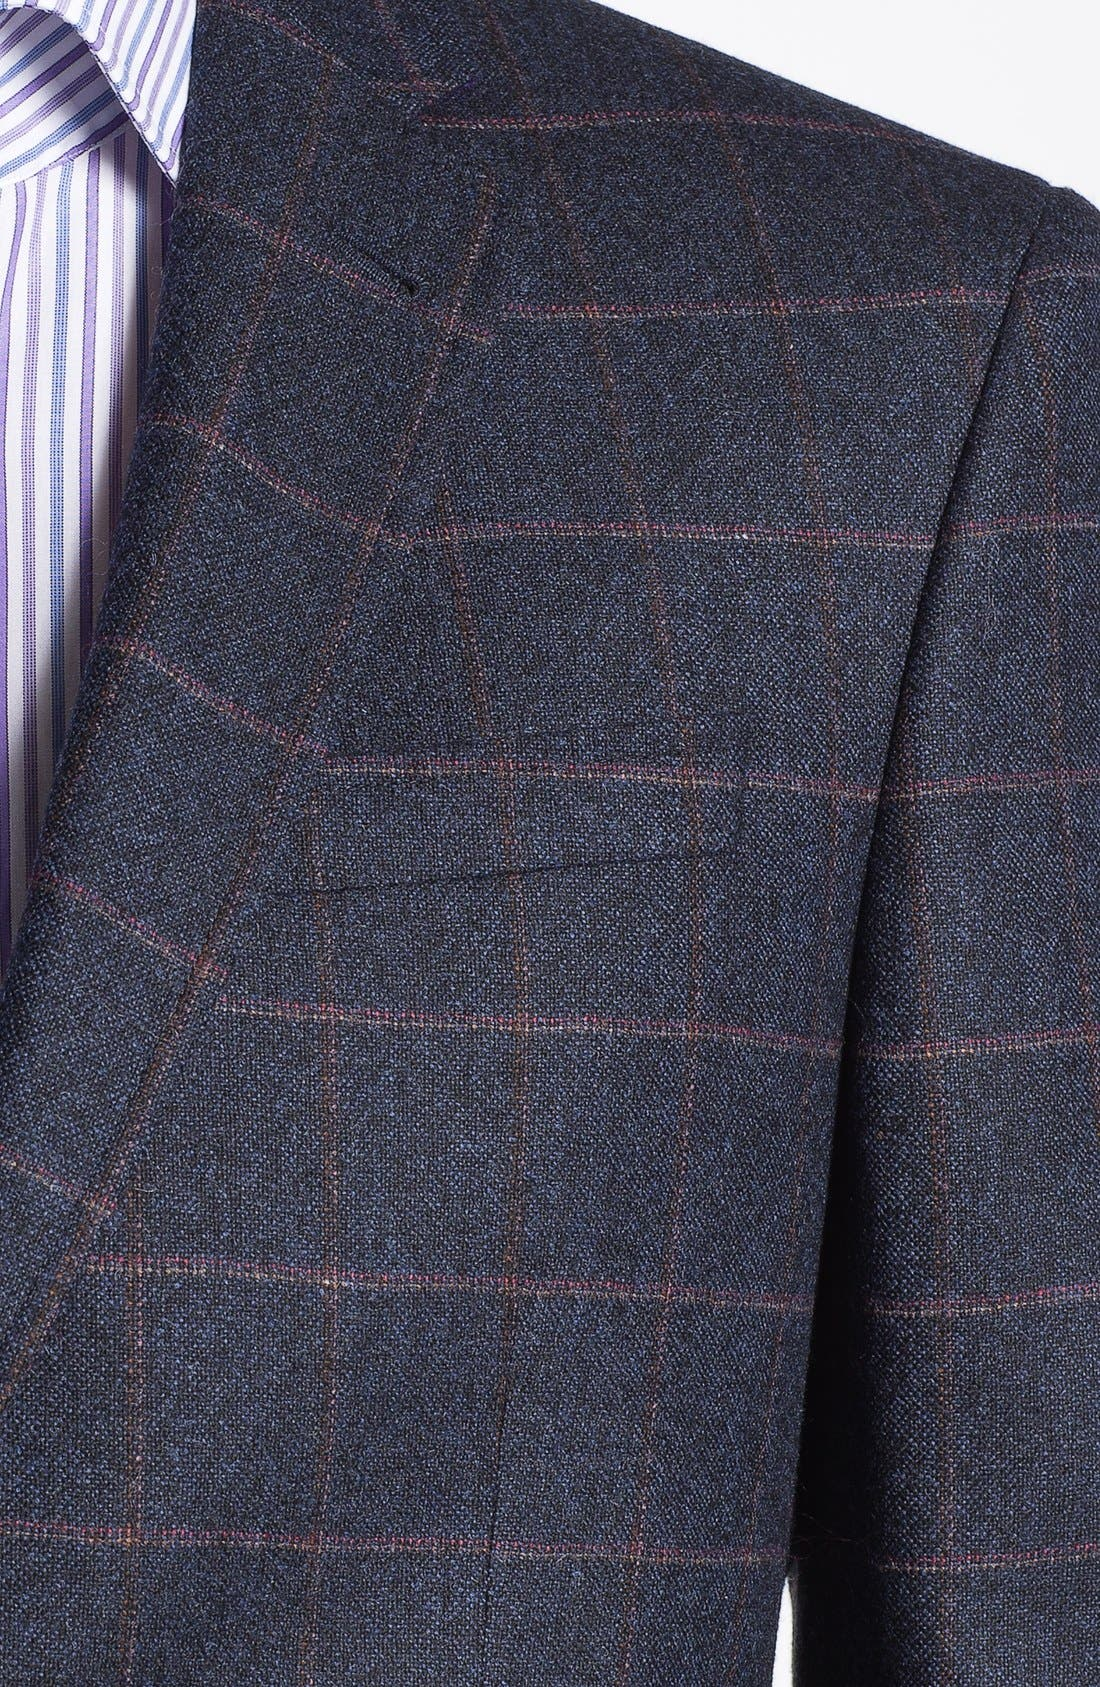 Alternate Image 2  - Ted Baker London 'Jim' Trim Fit Plaid Sportcoat (Online Only)